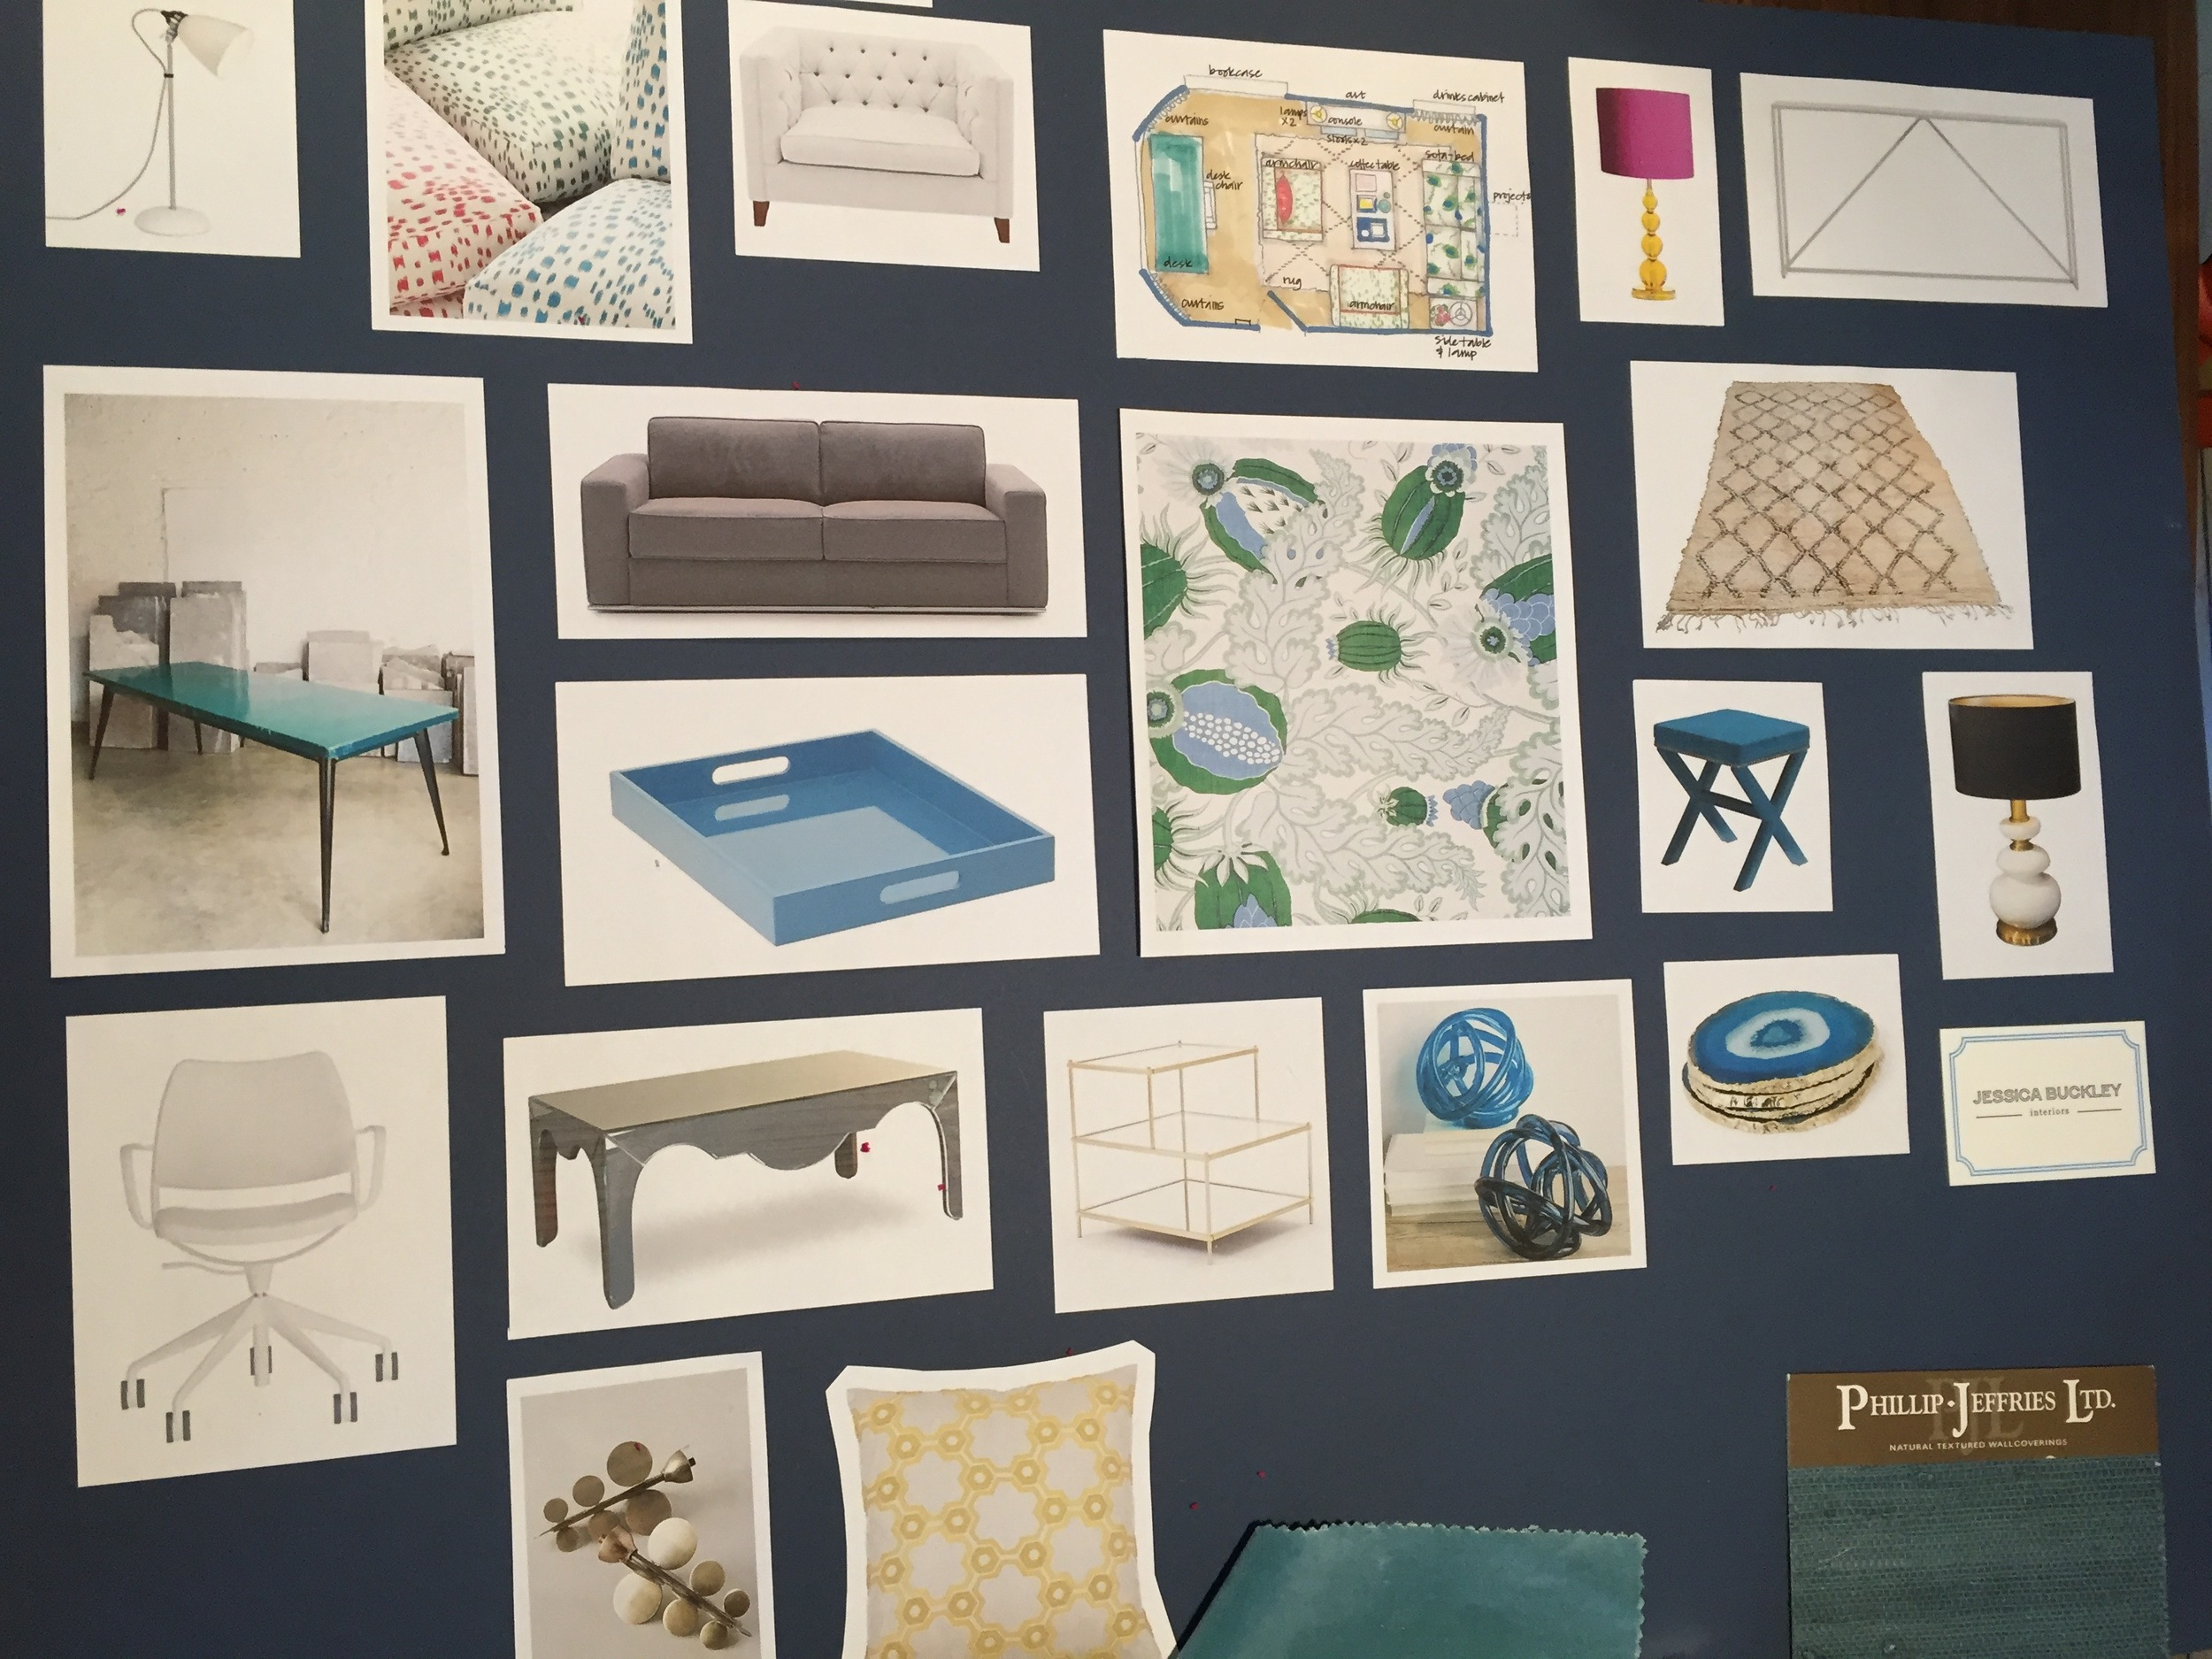 Jessica Buckley Interiors moodboard for The Pink House Den